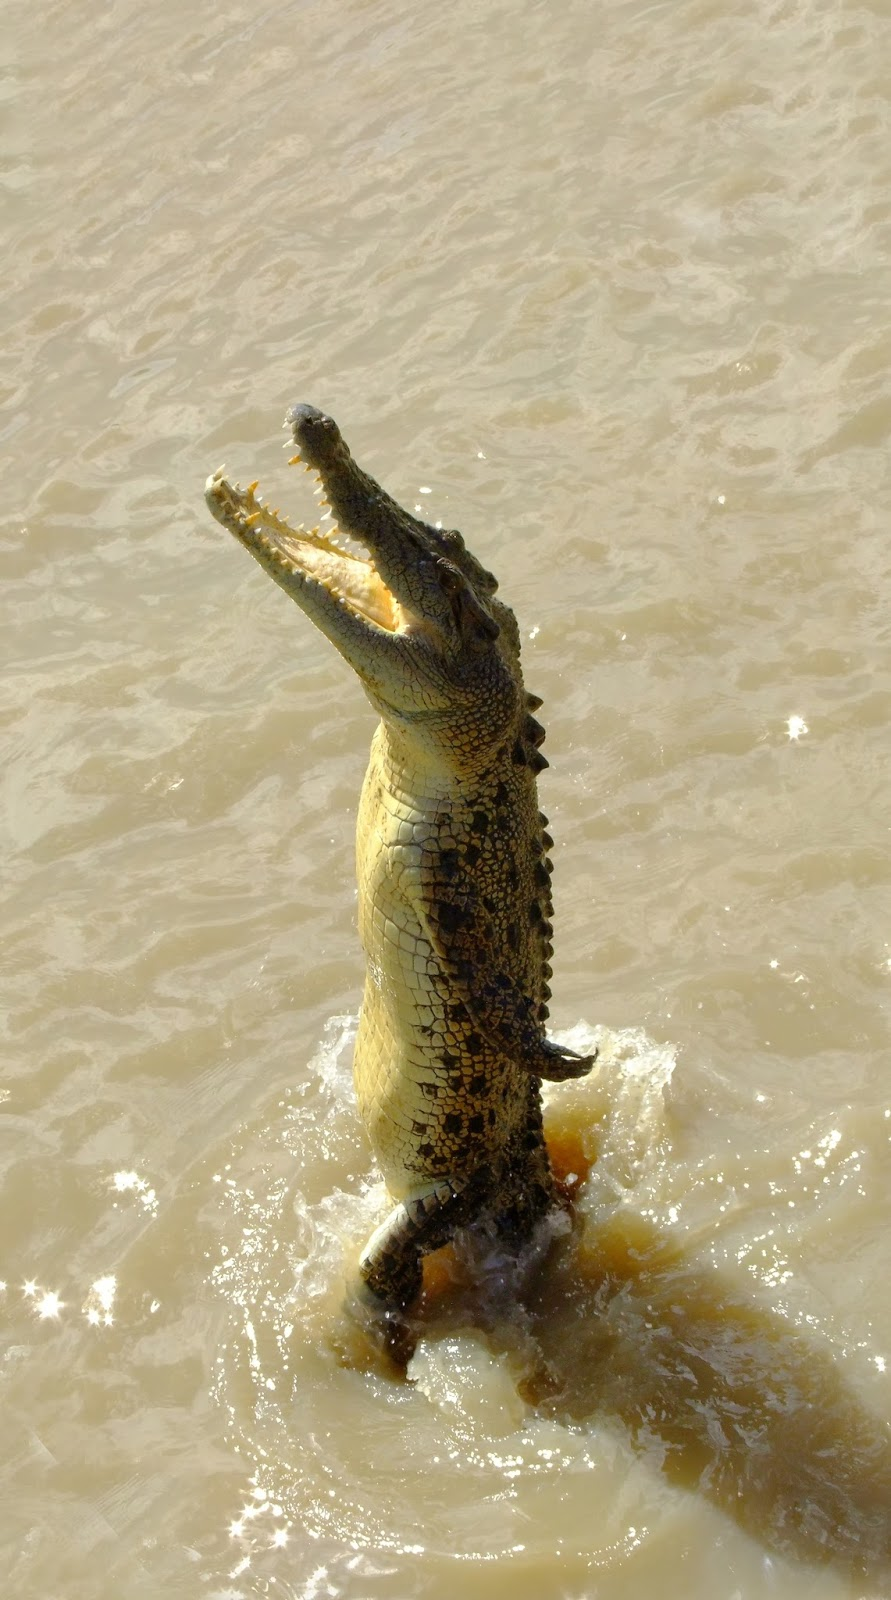 Amazing shot of a crocodile standing.